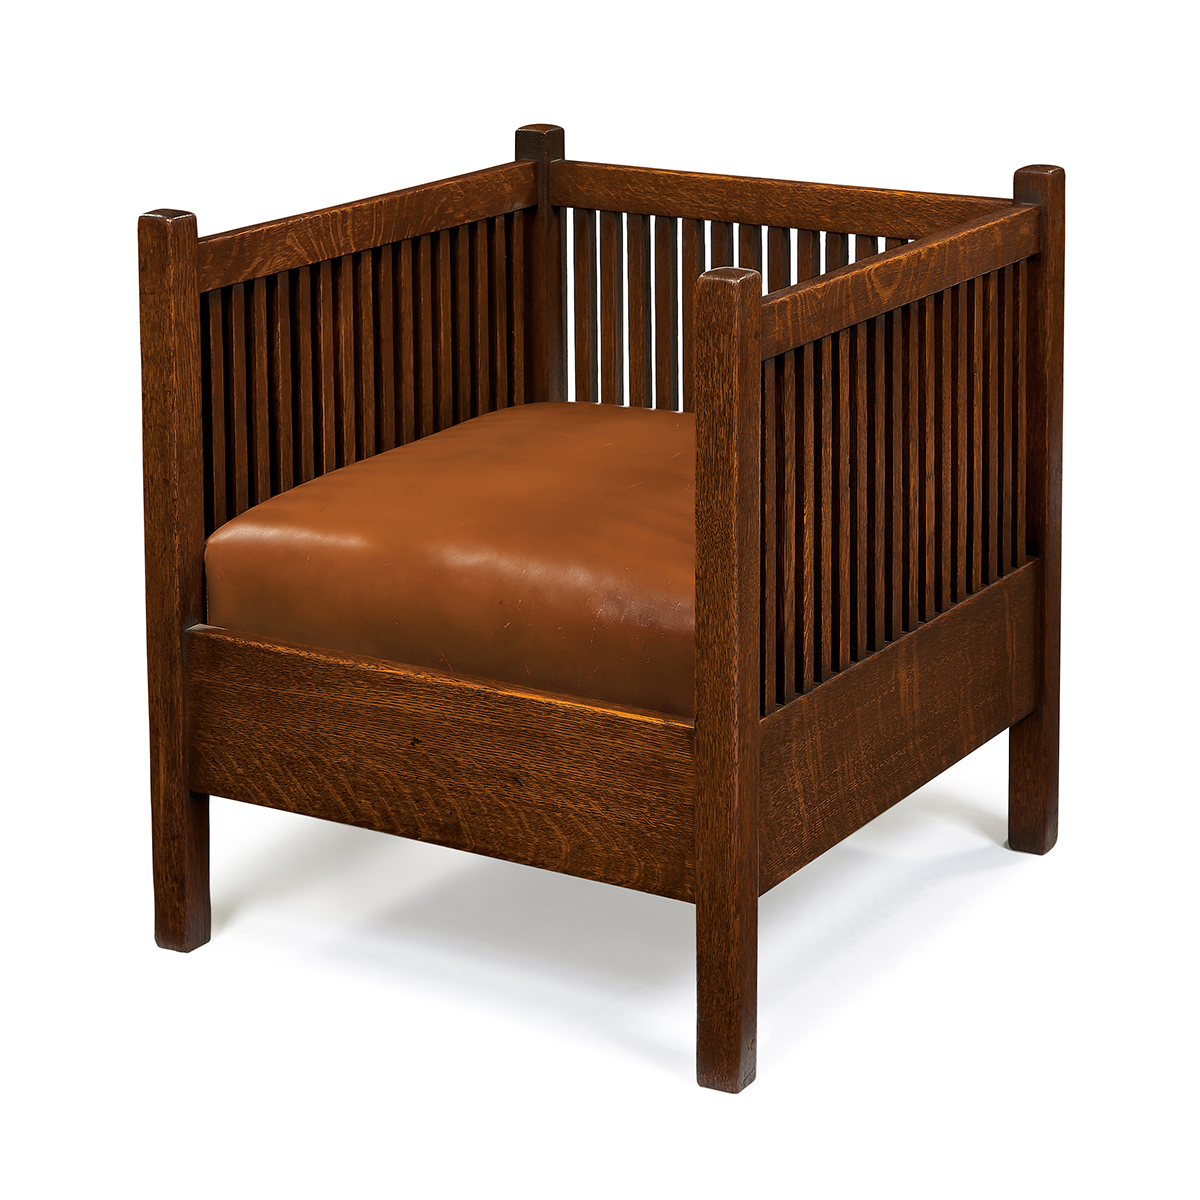 Gustav Stickley, spindle cube chair, #391